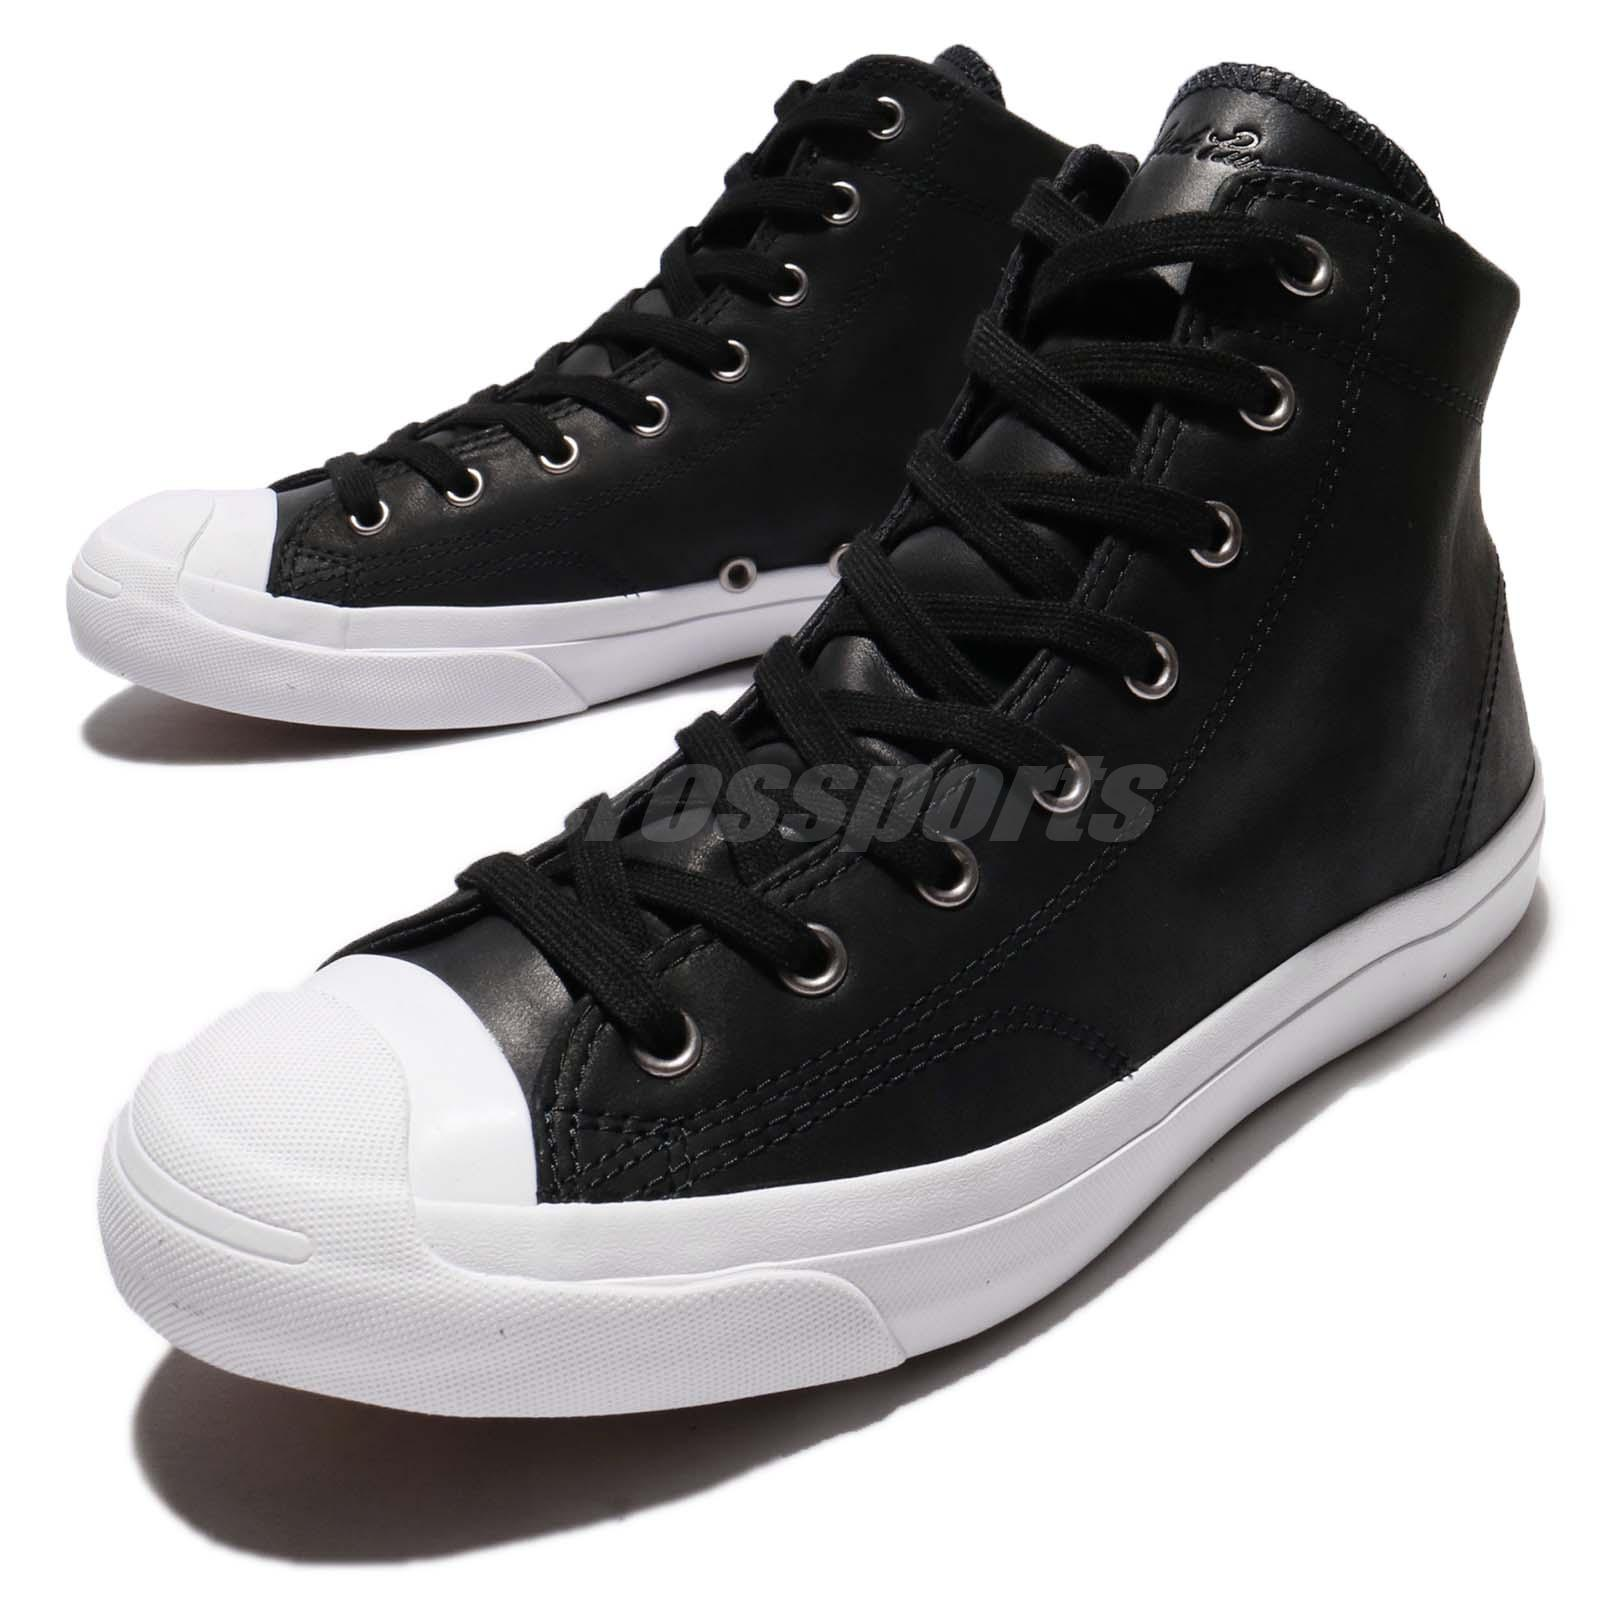 Converse Jack Purcell Jack Leather High Top Black White Men Shoe Sneaker 157707C